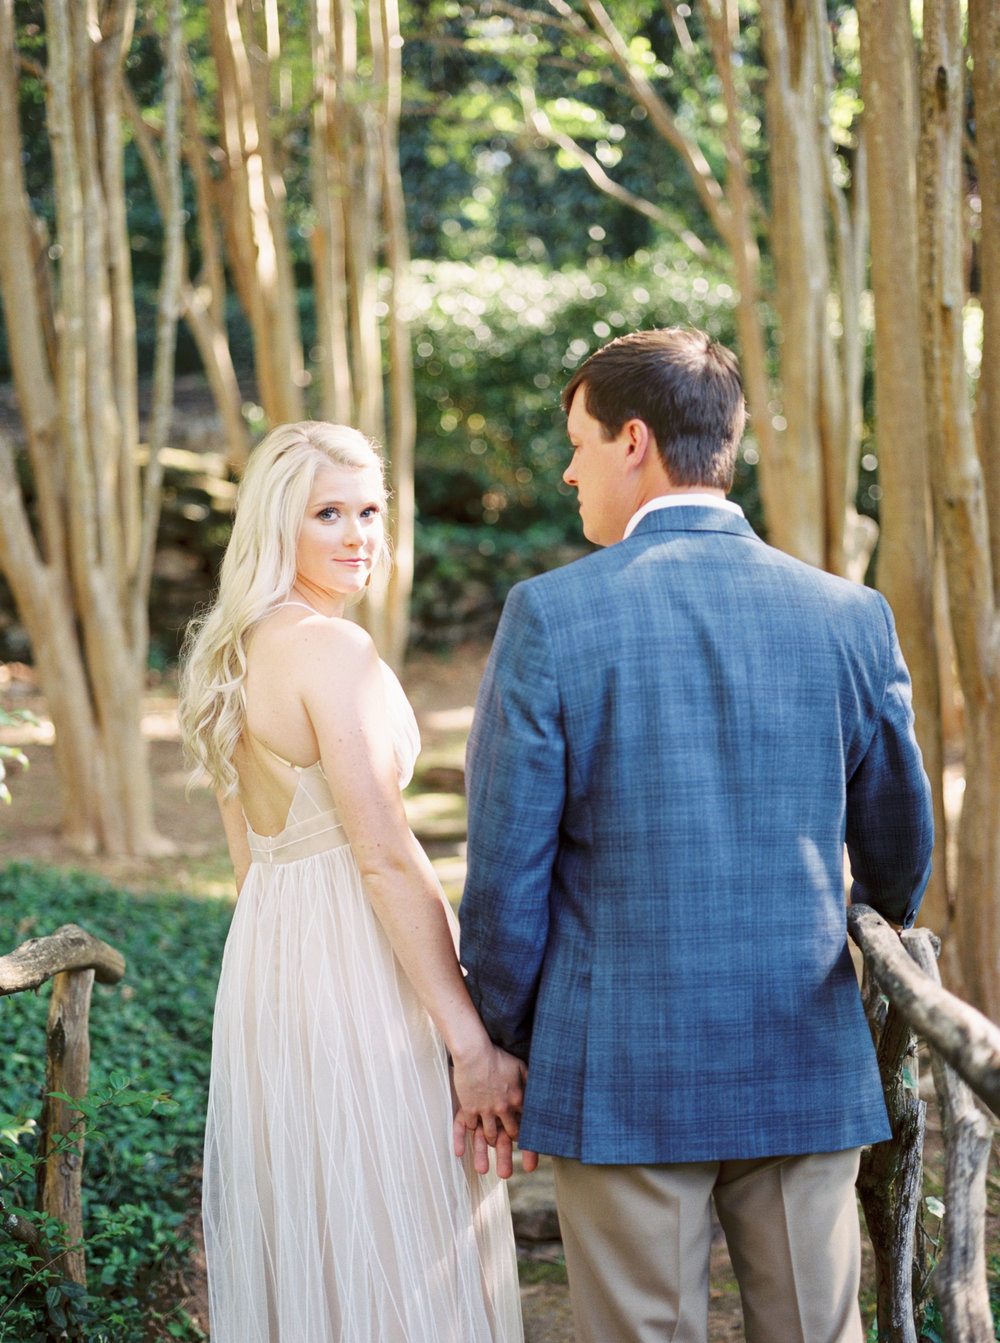 Erin_Johnny_Engagement_Dunaway_Gardens_Georgia_Film_Fallen_Photography-47.JPG